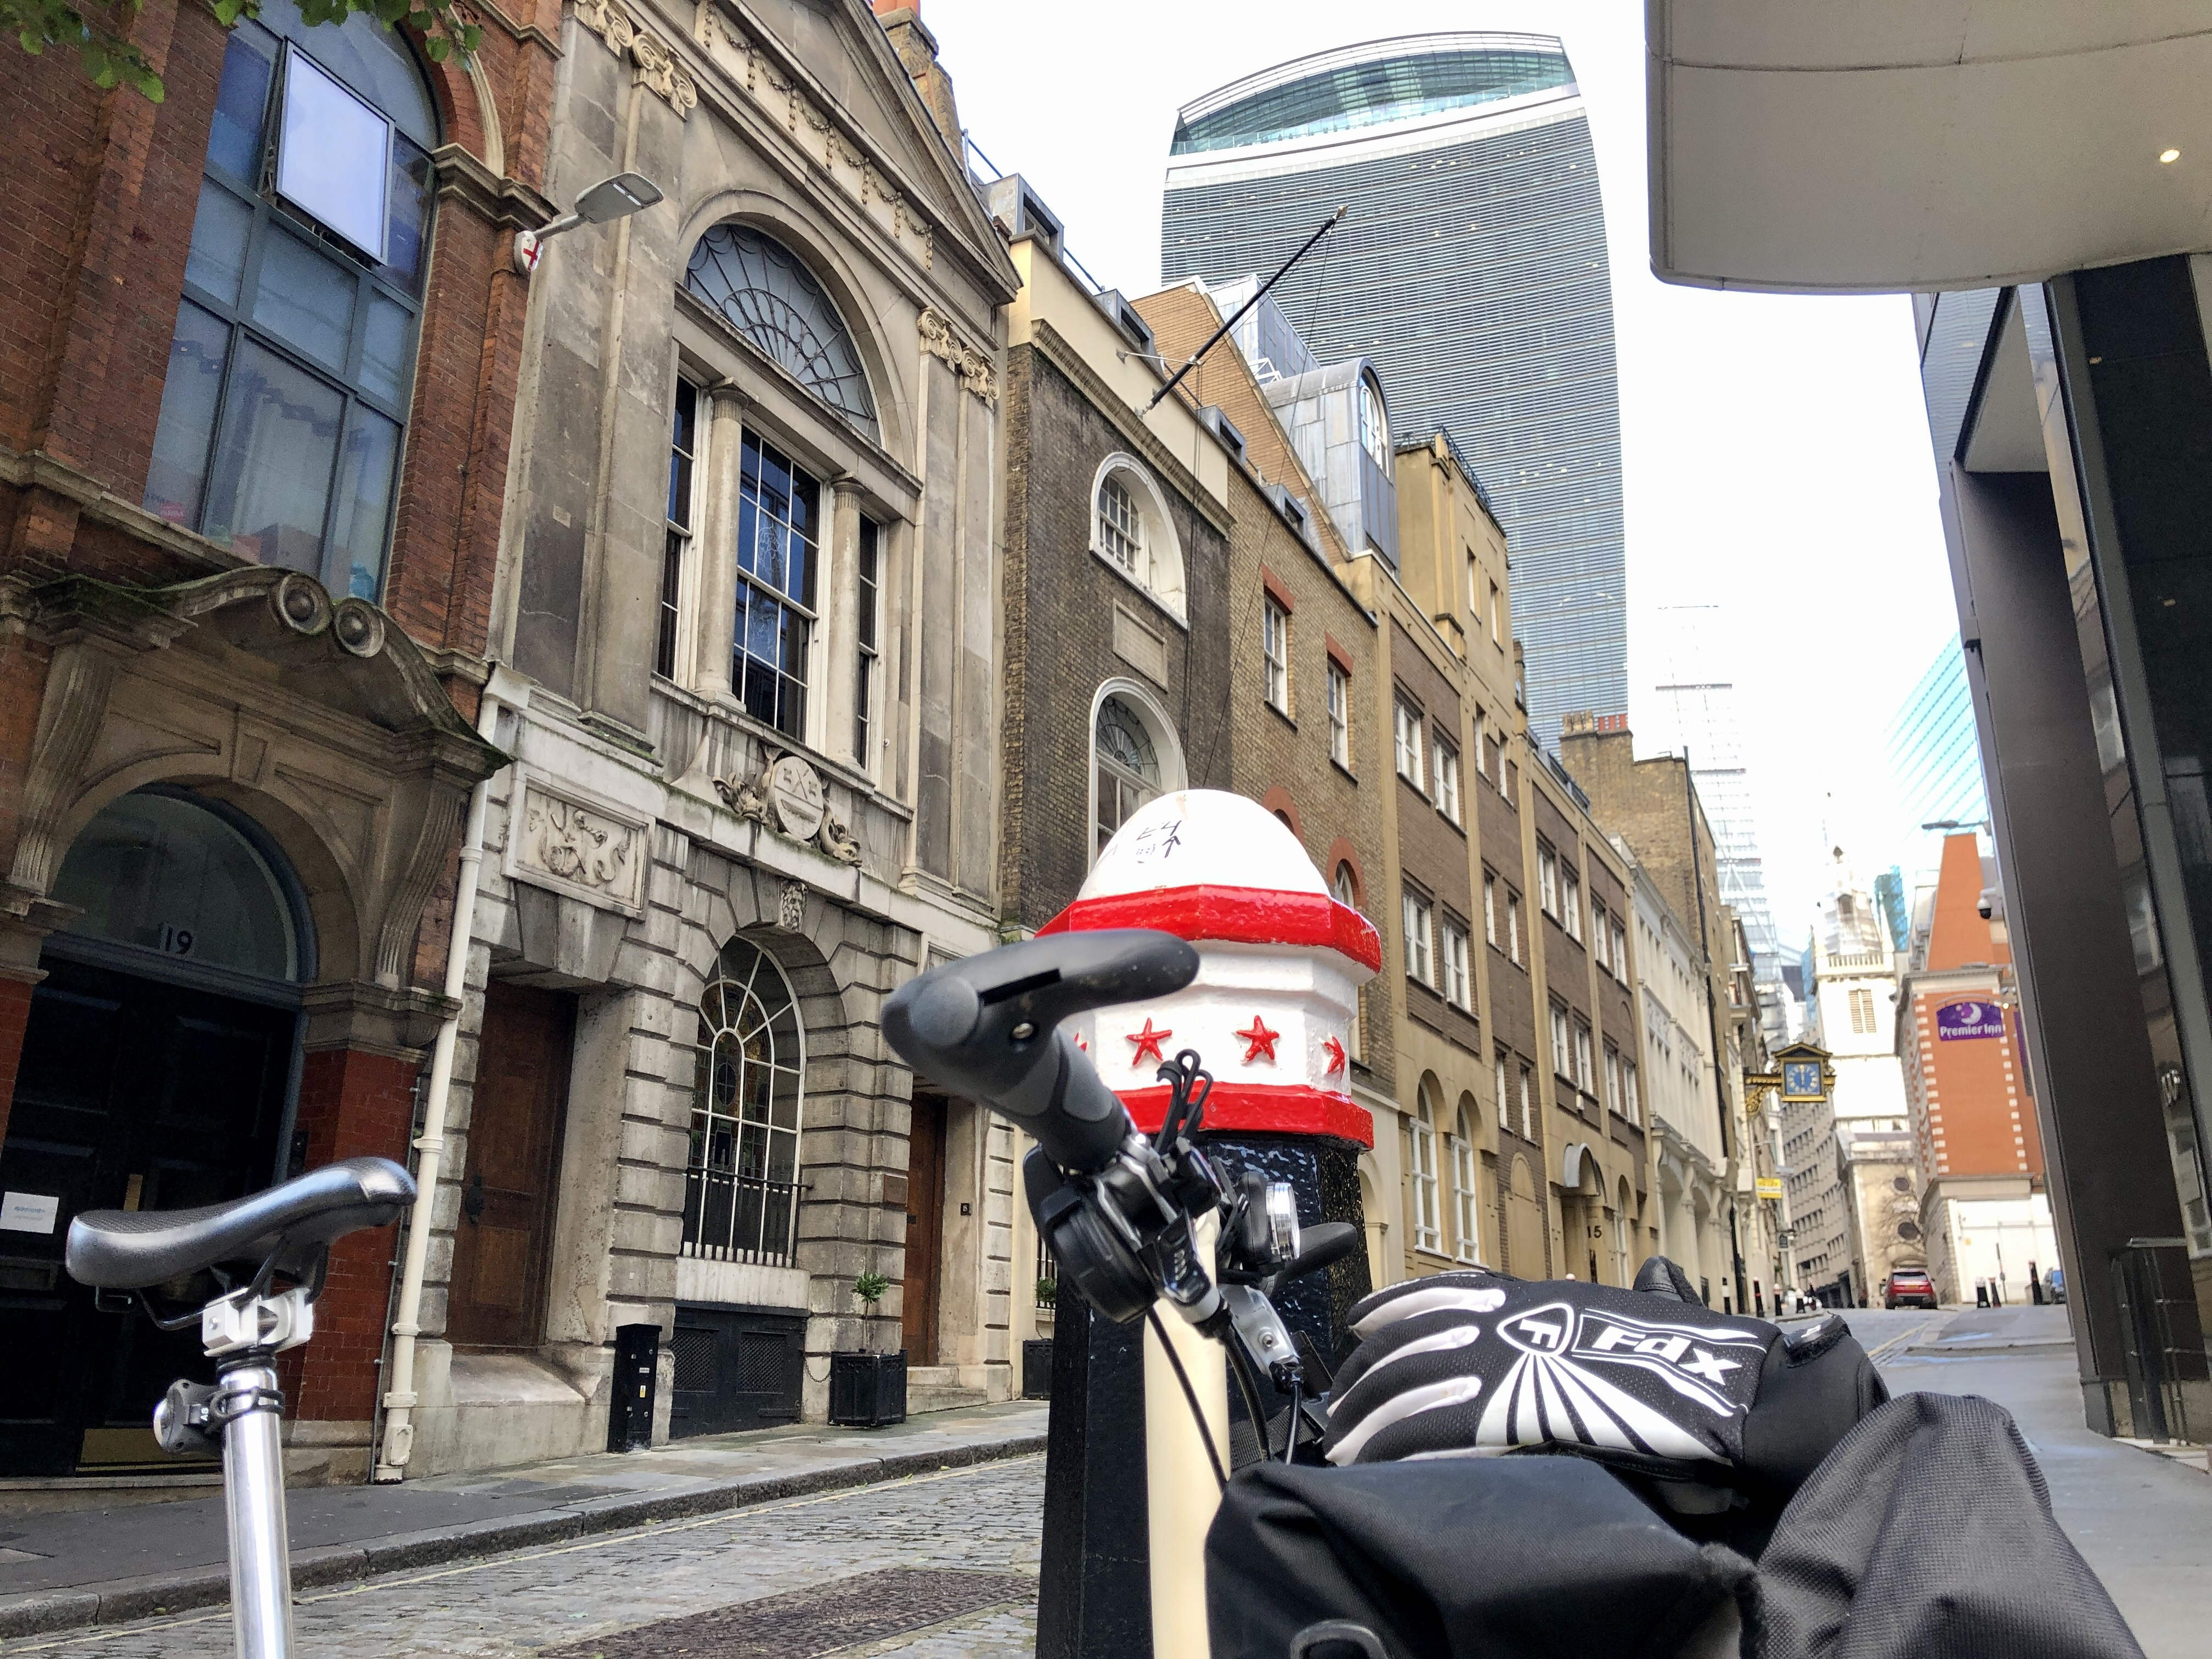 Brompton bike in front of The Walkie Talkie building in London